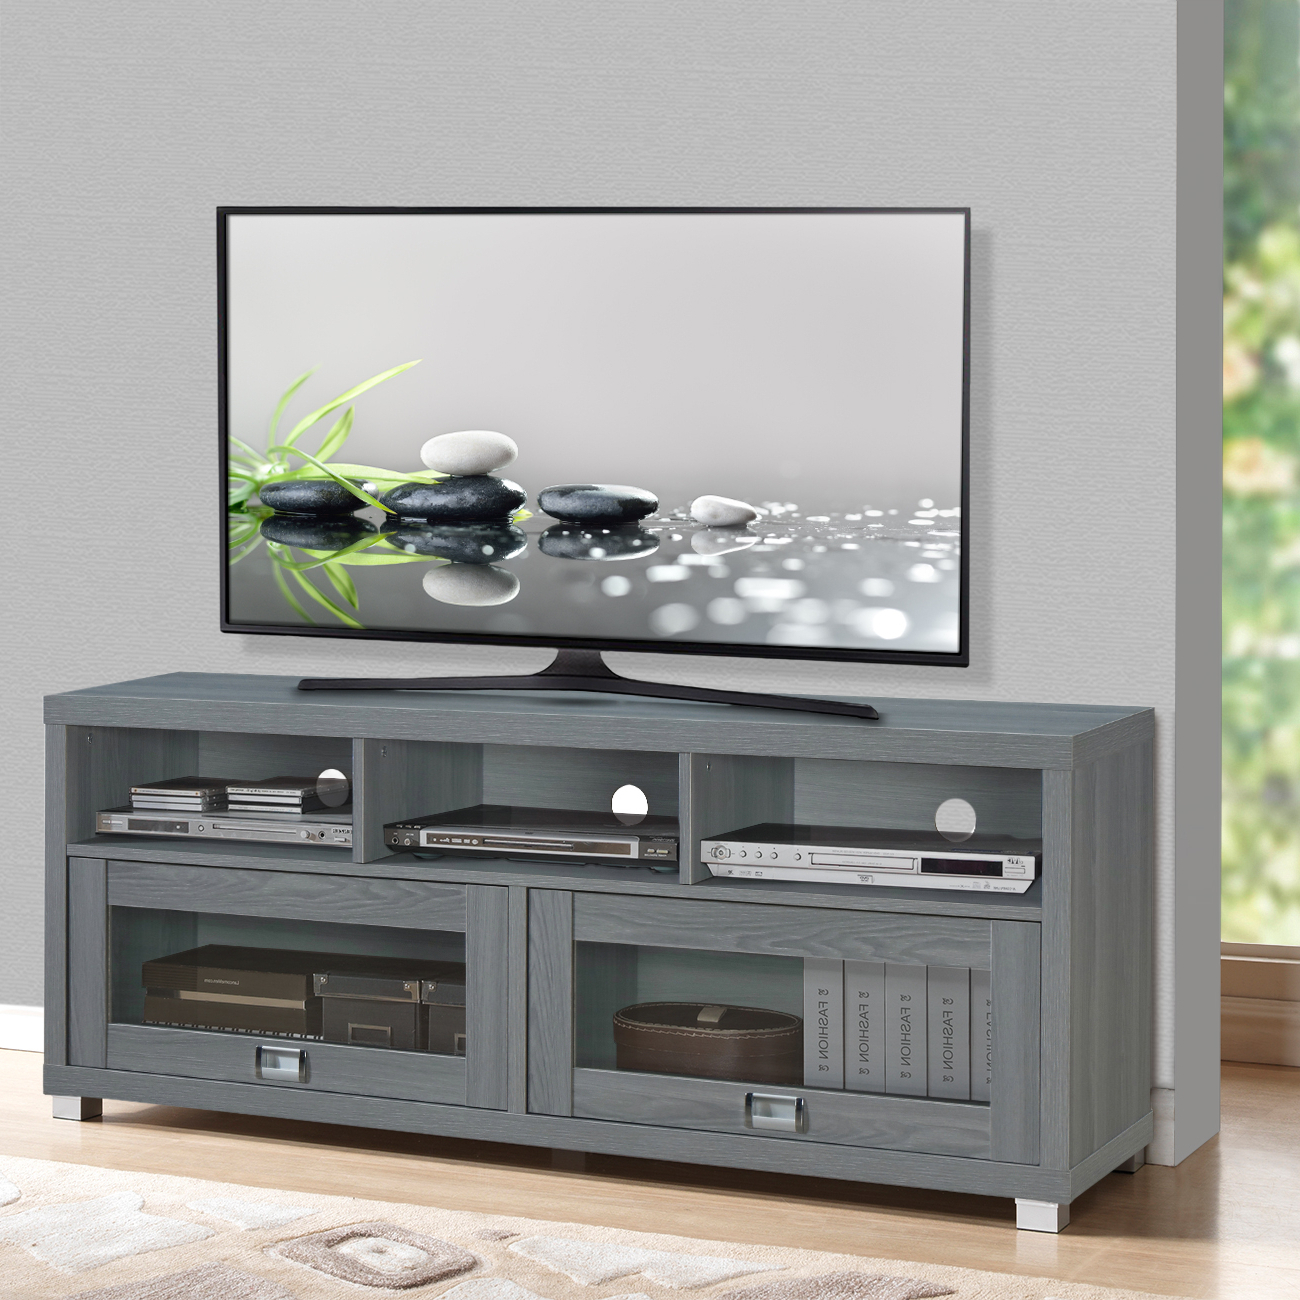 """Favorite Flat Screen Tv Stand Up To 75 Inch 50 55 60 65 70 55in Pertaining To Tracy Tv Stands For Tvs Up To 50"""" (View 20 of 25)"""